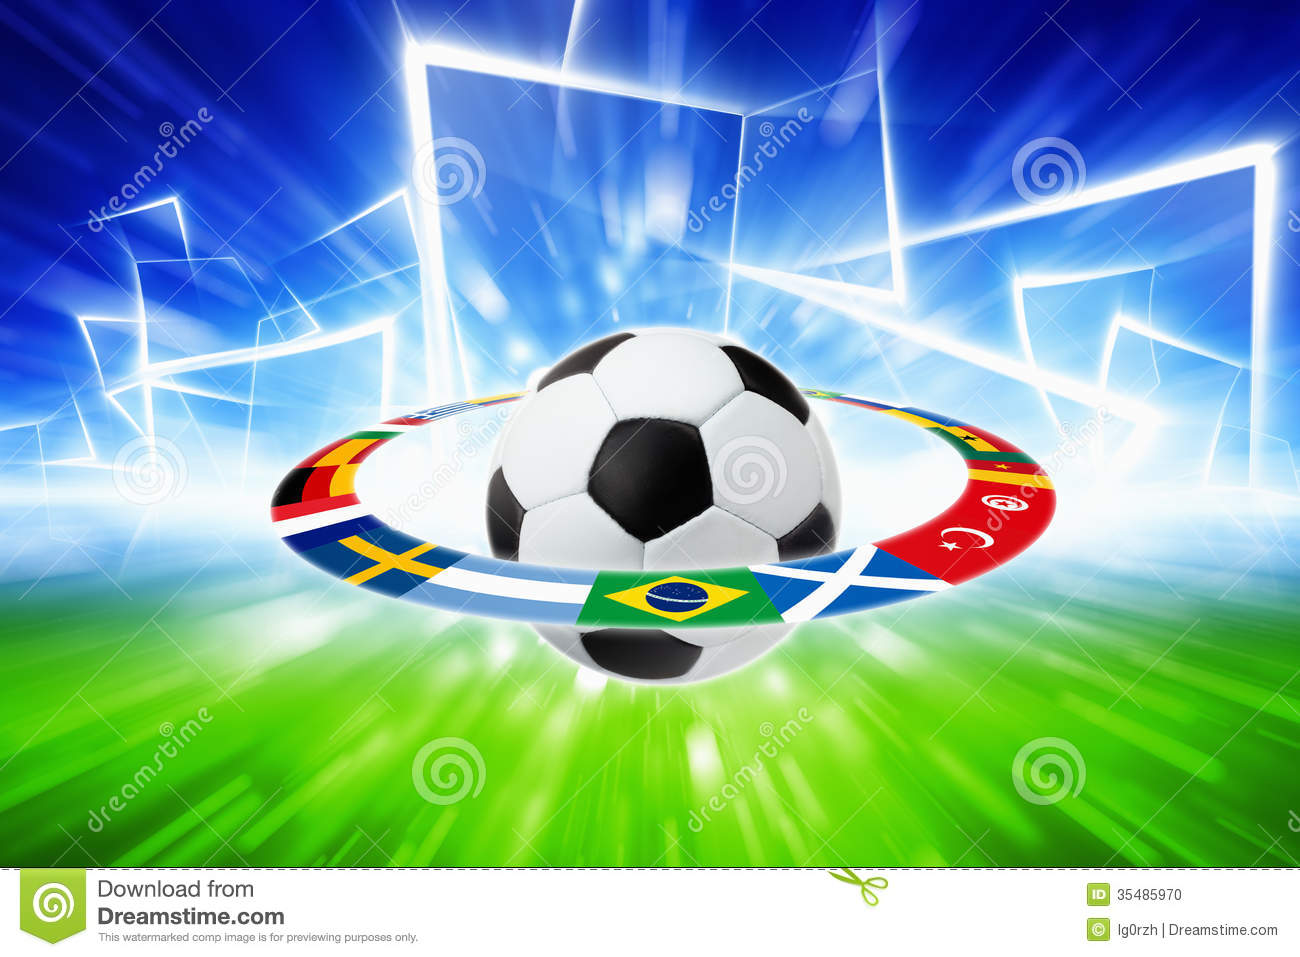 Soccer Ball, National Team Flags Stock Photo - Image: 35485970